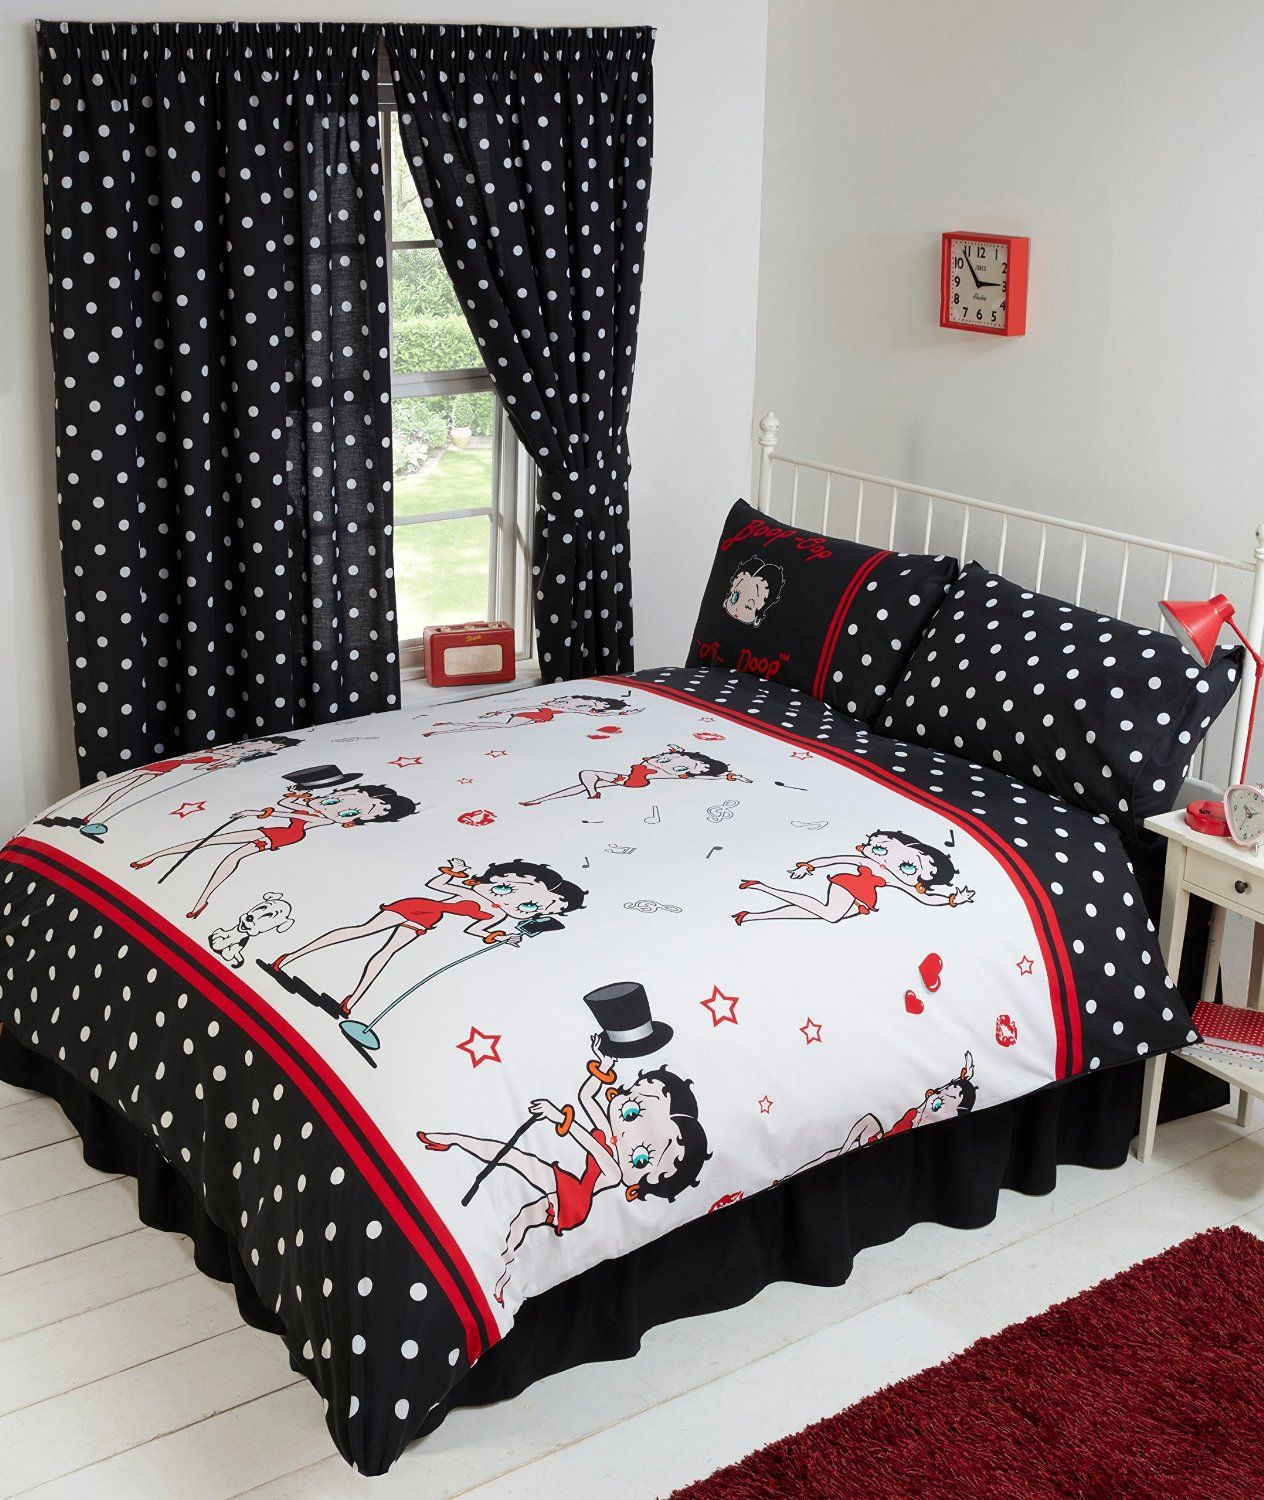 einzelbett betty boop bettw sche polka dot schwarz wei rot polka dots pinterest. Black Bedroom Furniture Sets. Home Design Ideas